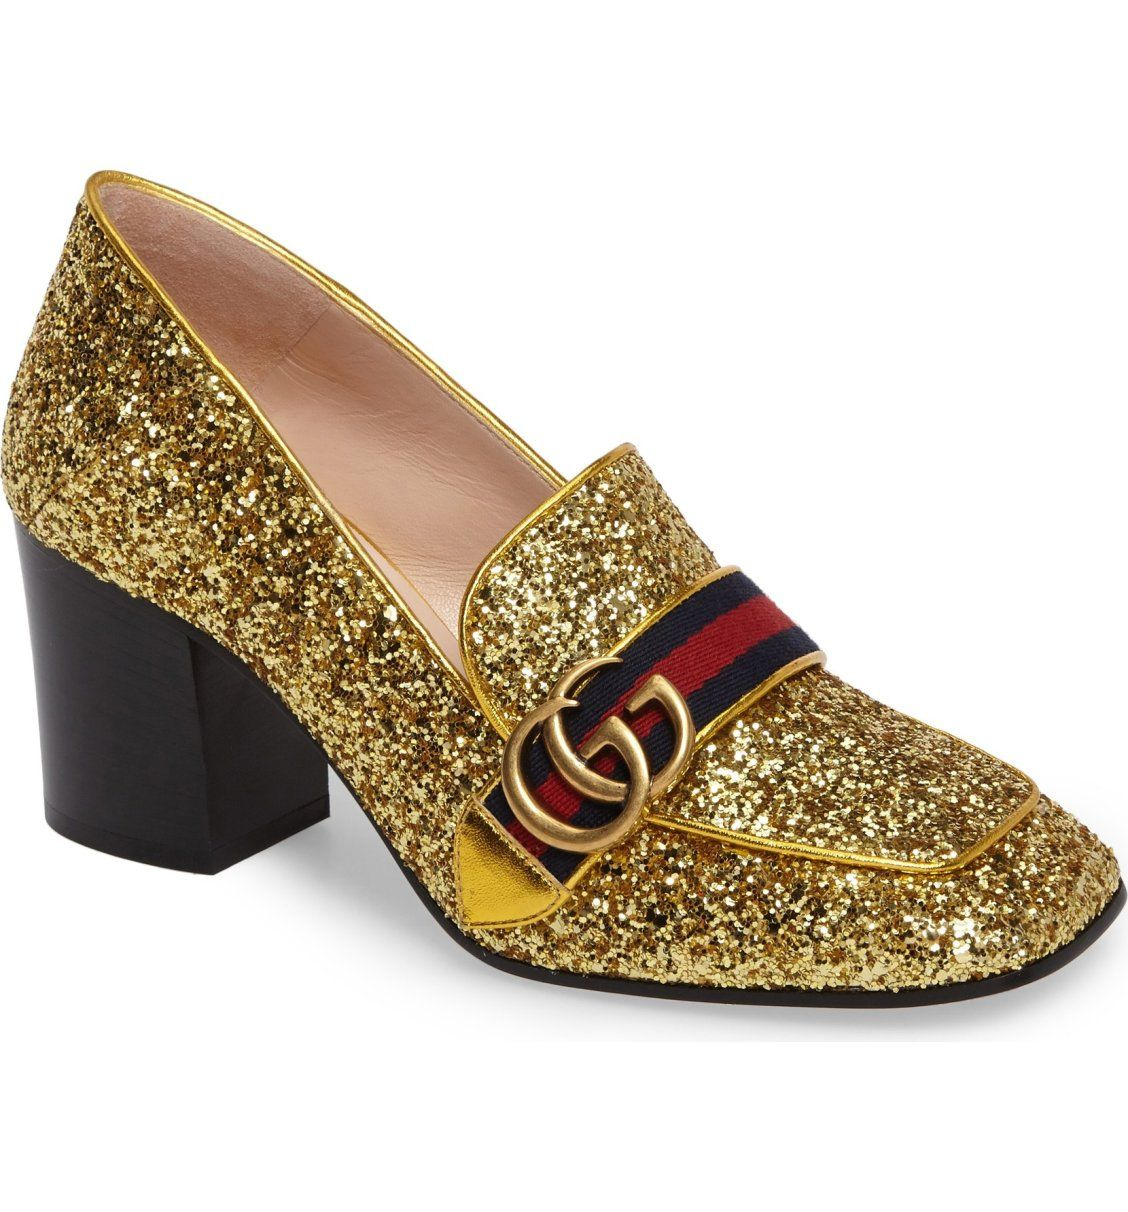 d5a13e19381 Gucci s trademark GG logo and grosgrain web bridge the vamp of a square-toe  loafer awash in sparkling metallic glitter.